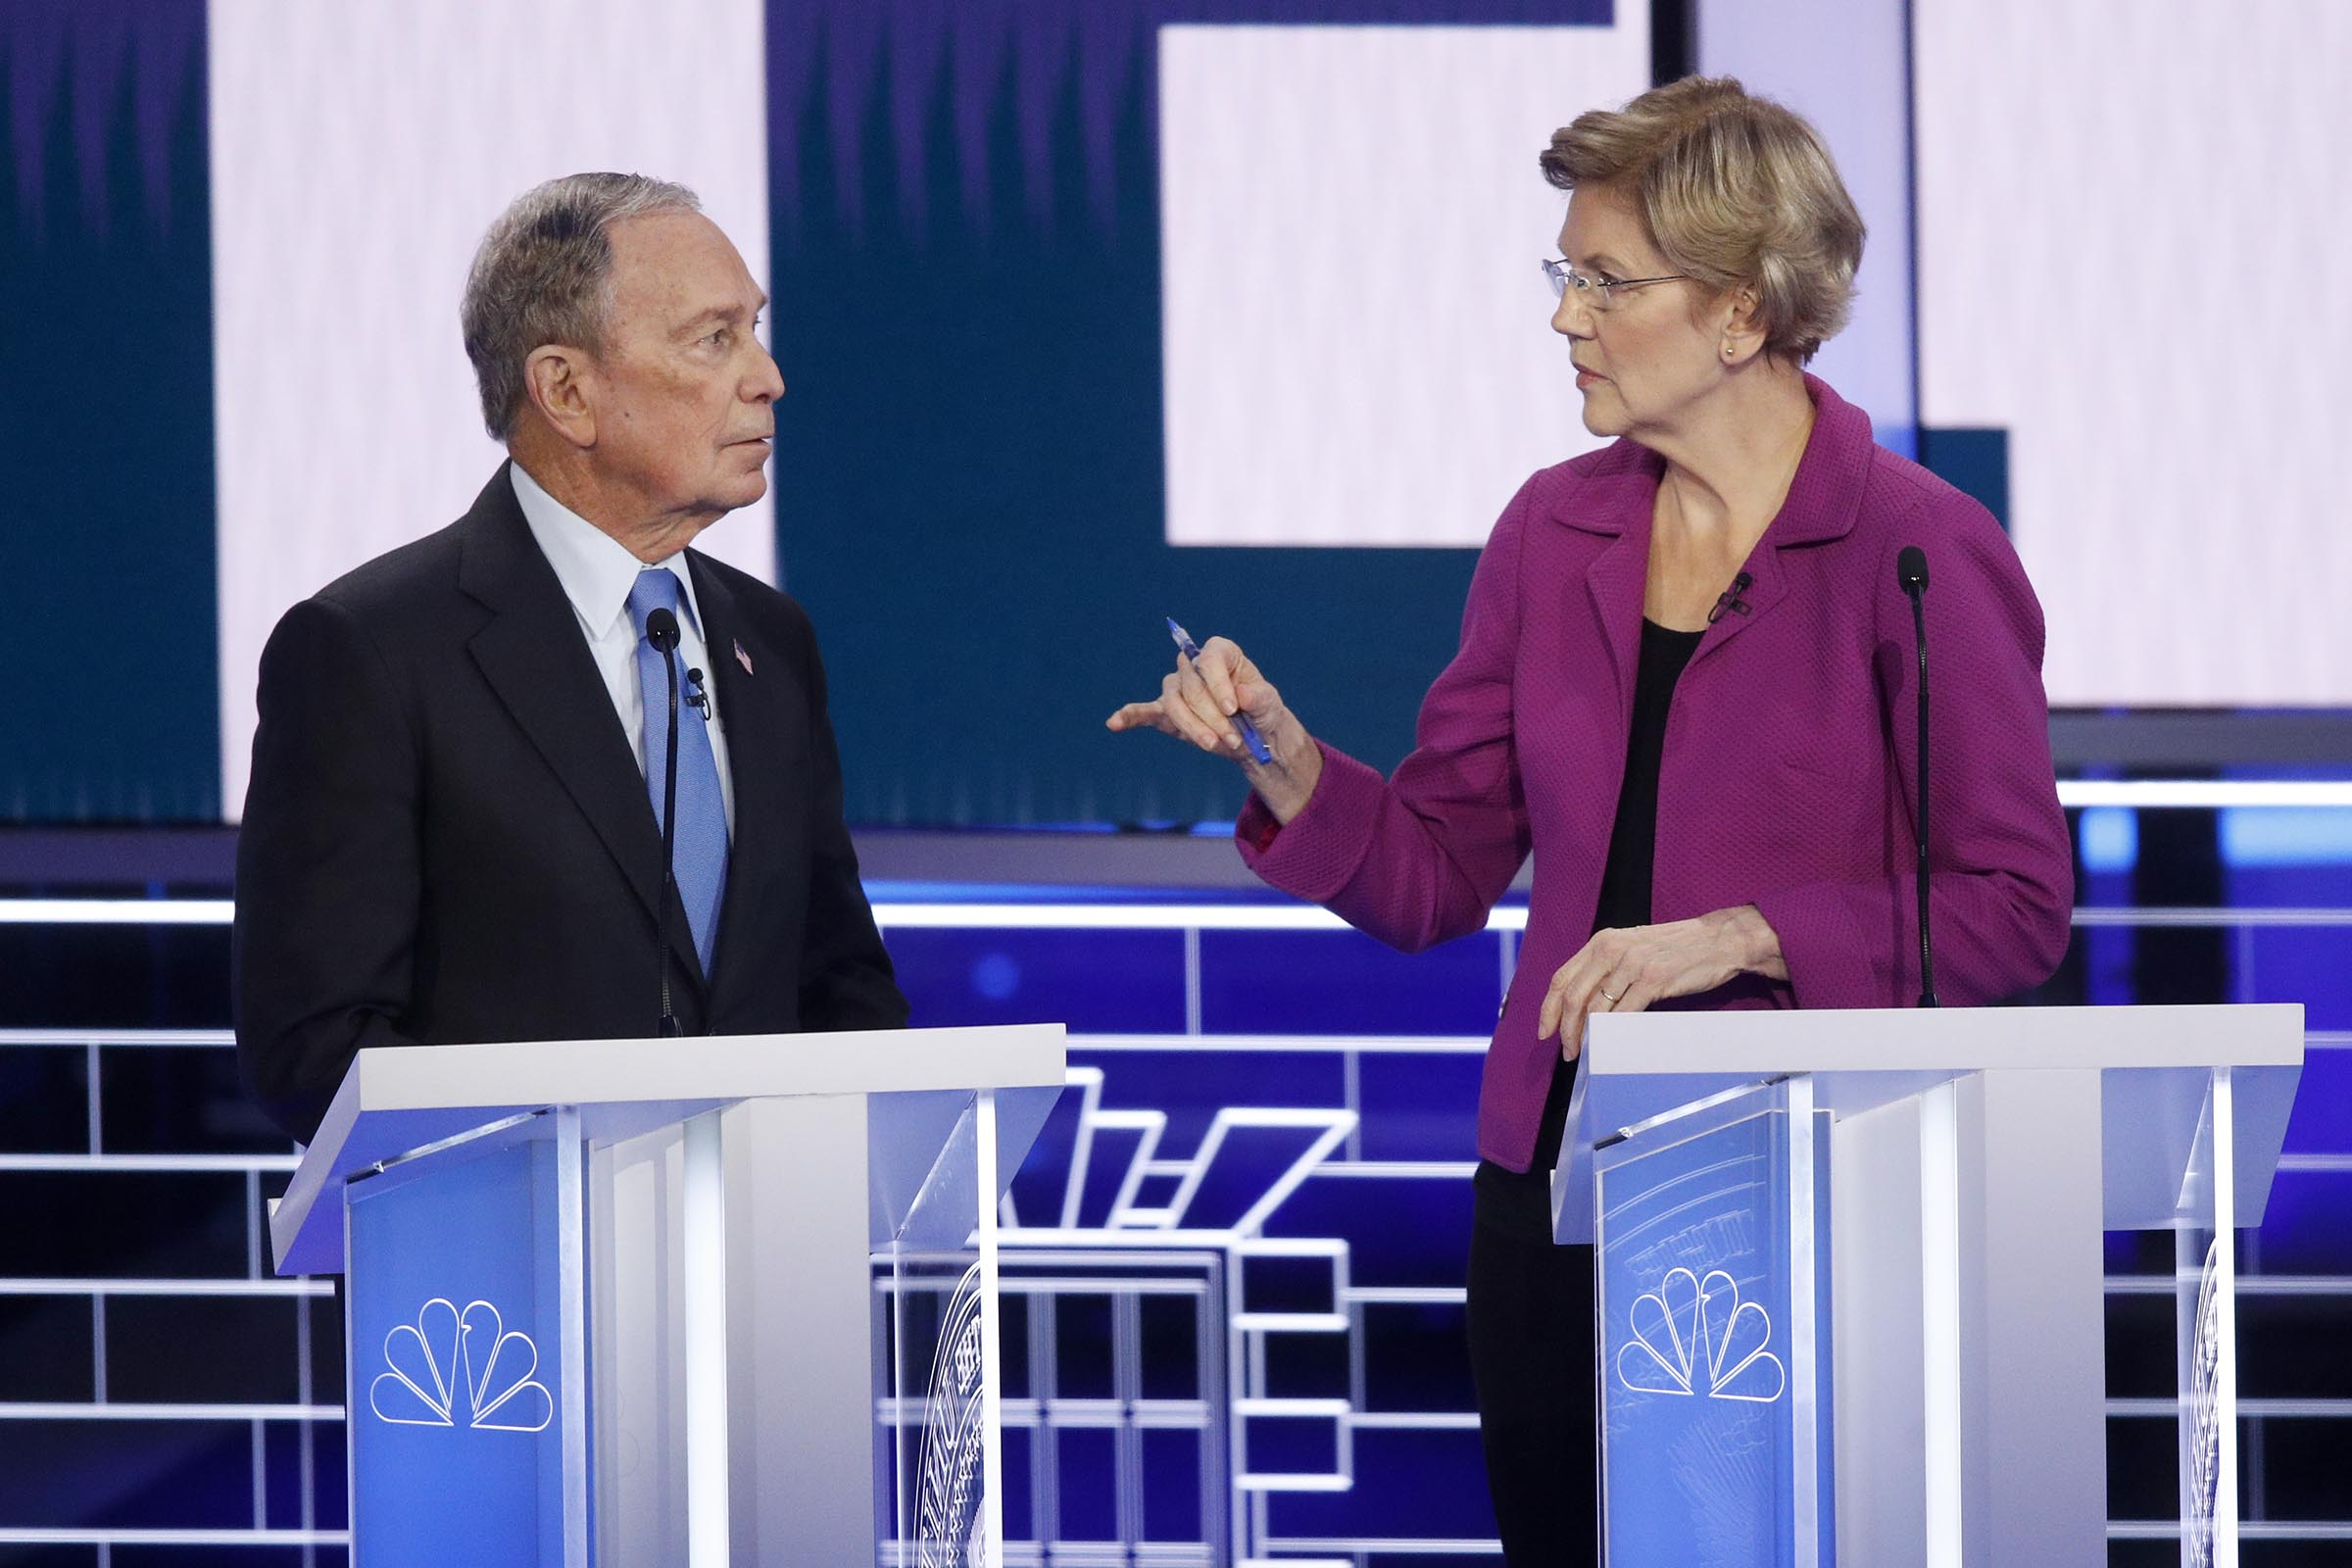 Democratic presidential candidates, former New York City Mayor Mike Bloomberg, left, and Sen. Elizabeth Warren, D-Mass., talk before a Democratic presidential primary debate on Feb. 19, 2020, in Las Vegas.